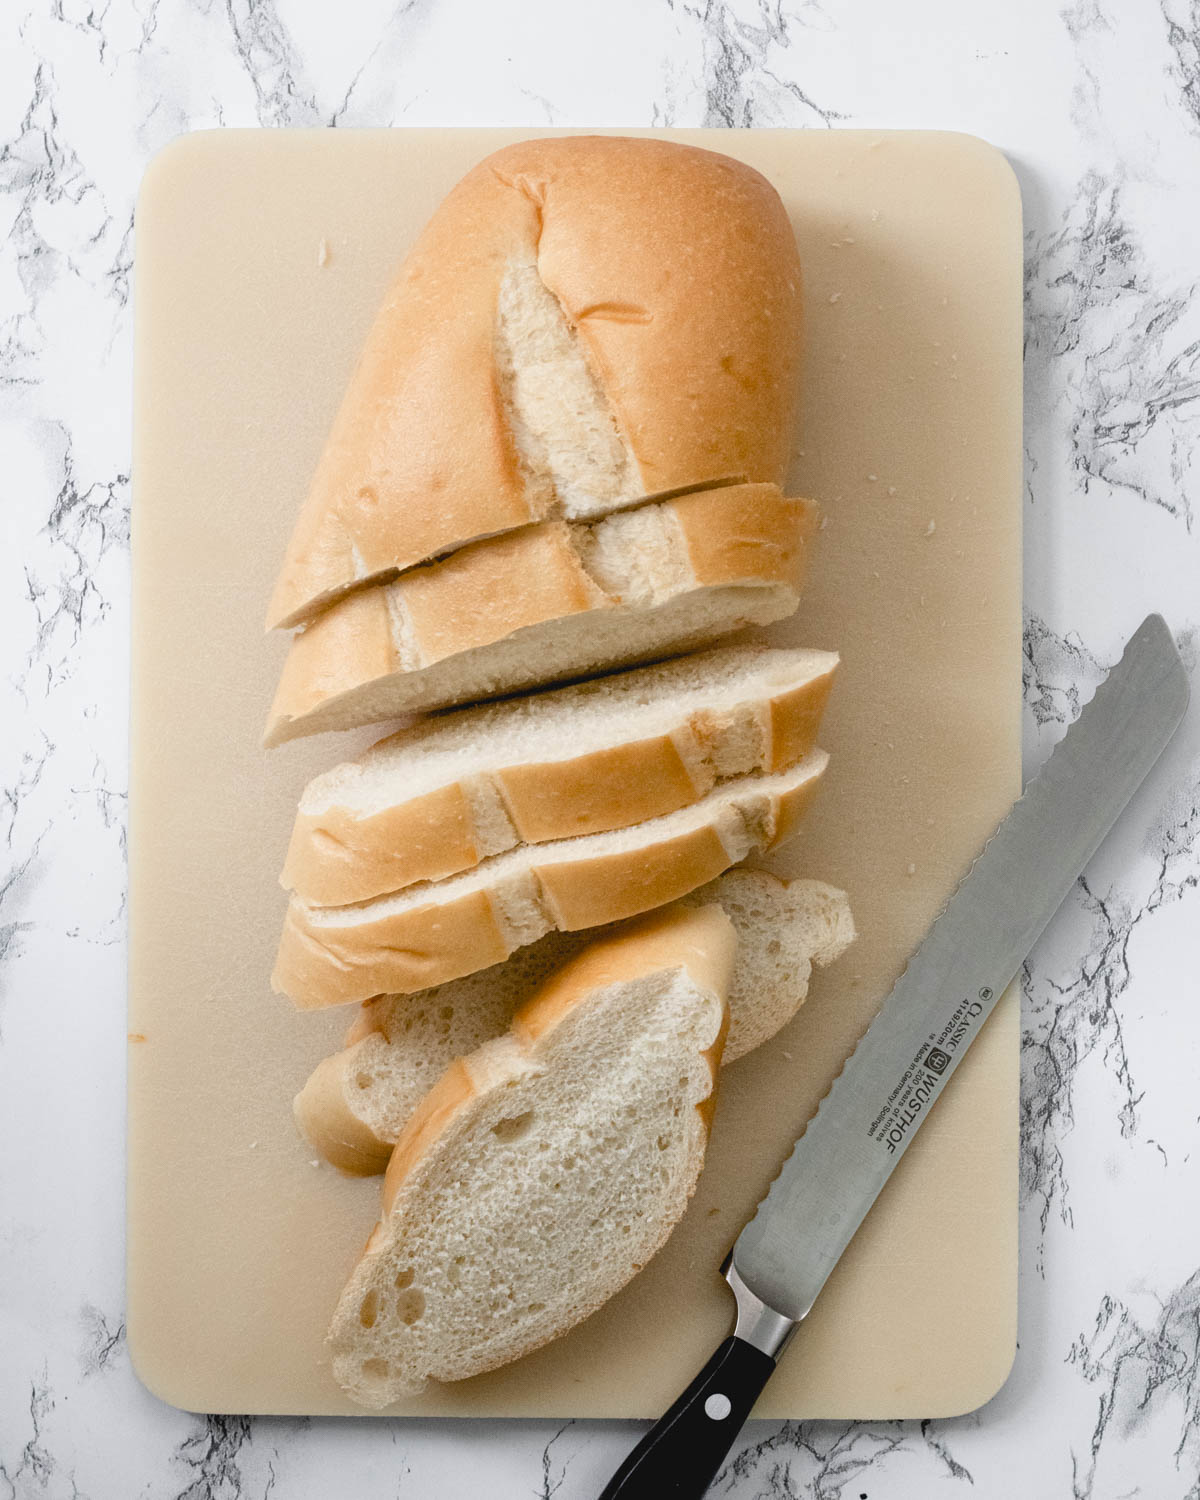 Sliced French bread on a cutting board with knife.